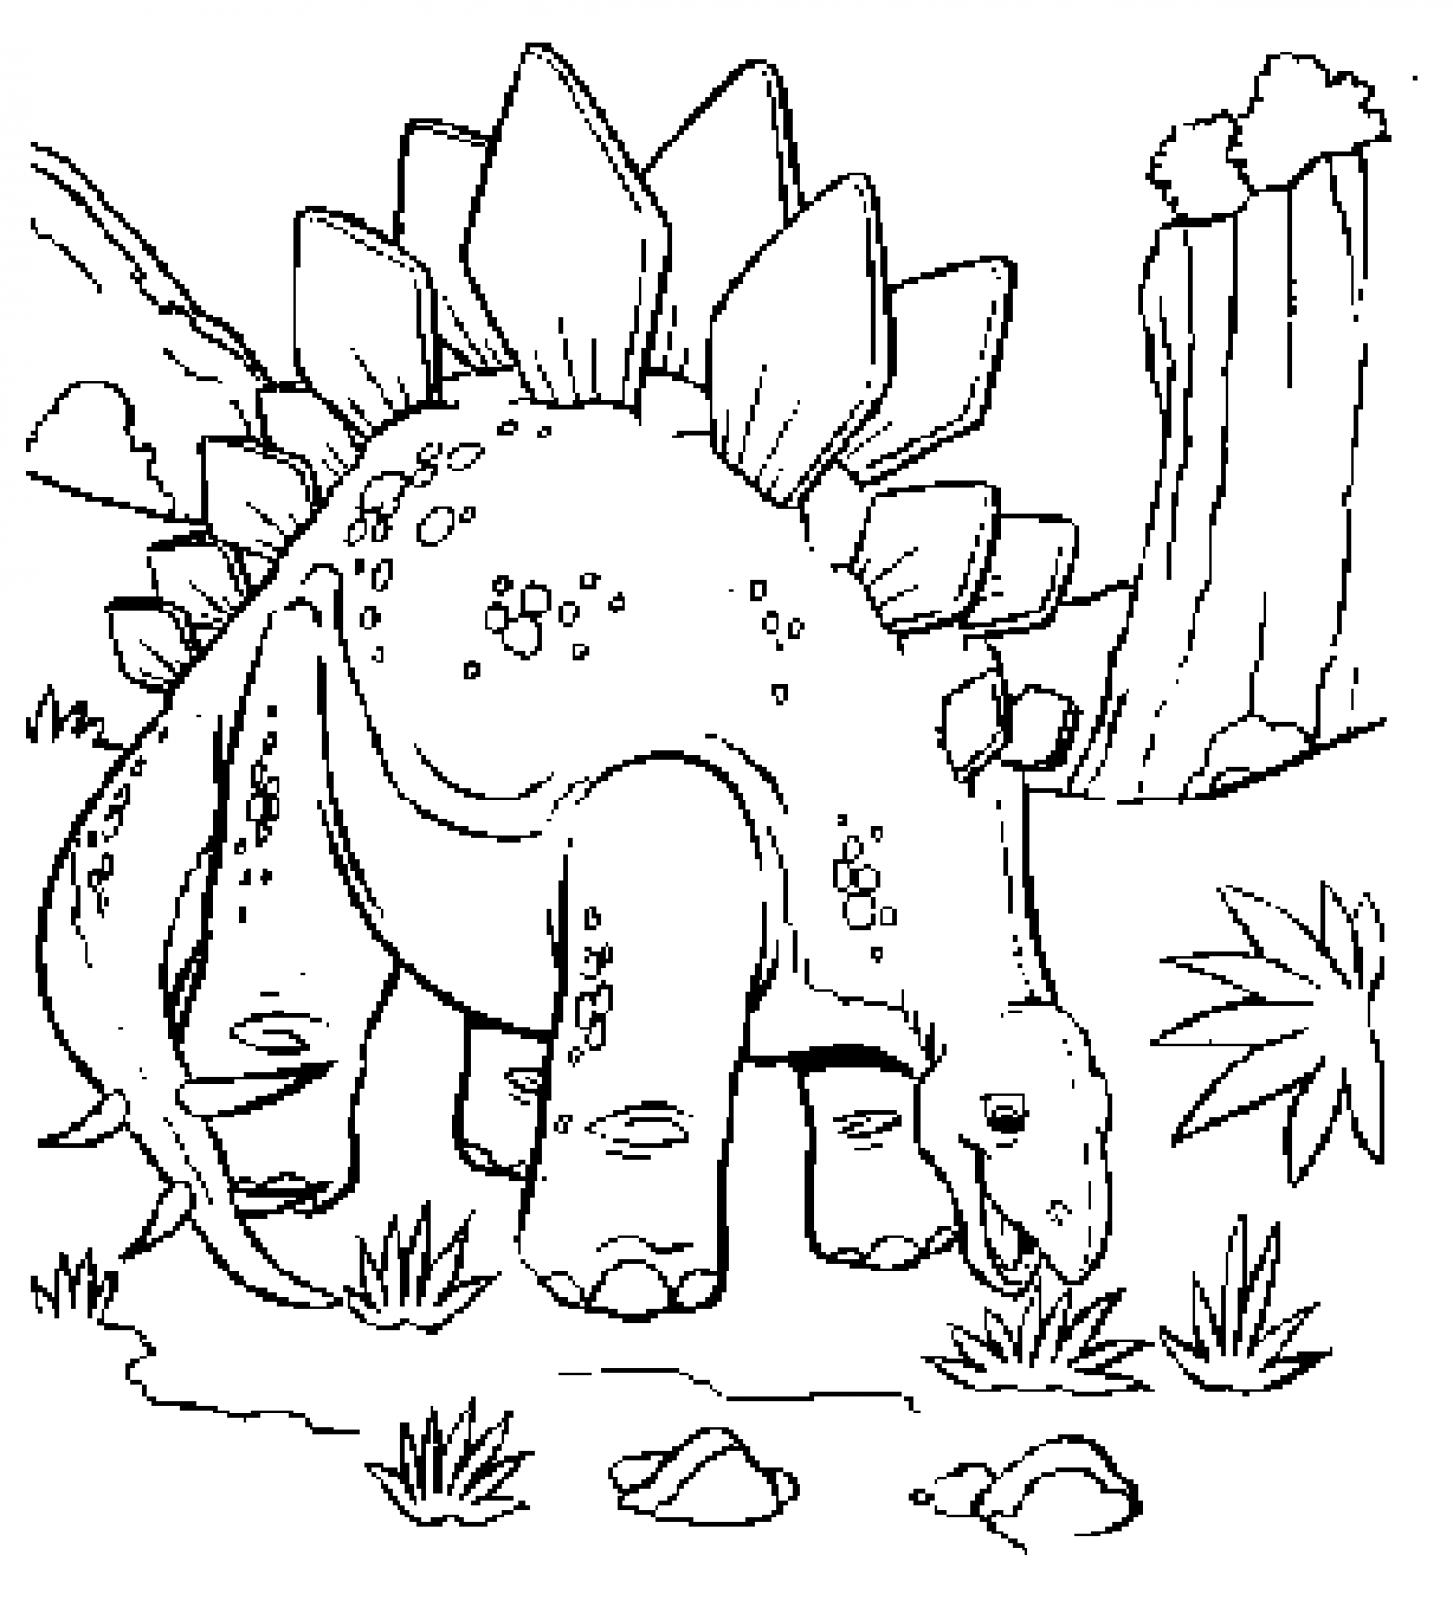 Fresh Dinosaur Coloring Pages Coloring Page Free Coloring Book Printable Of Coloring Book and Pages Free Printable Dinosaur Habitat Coloring Printable